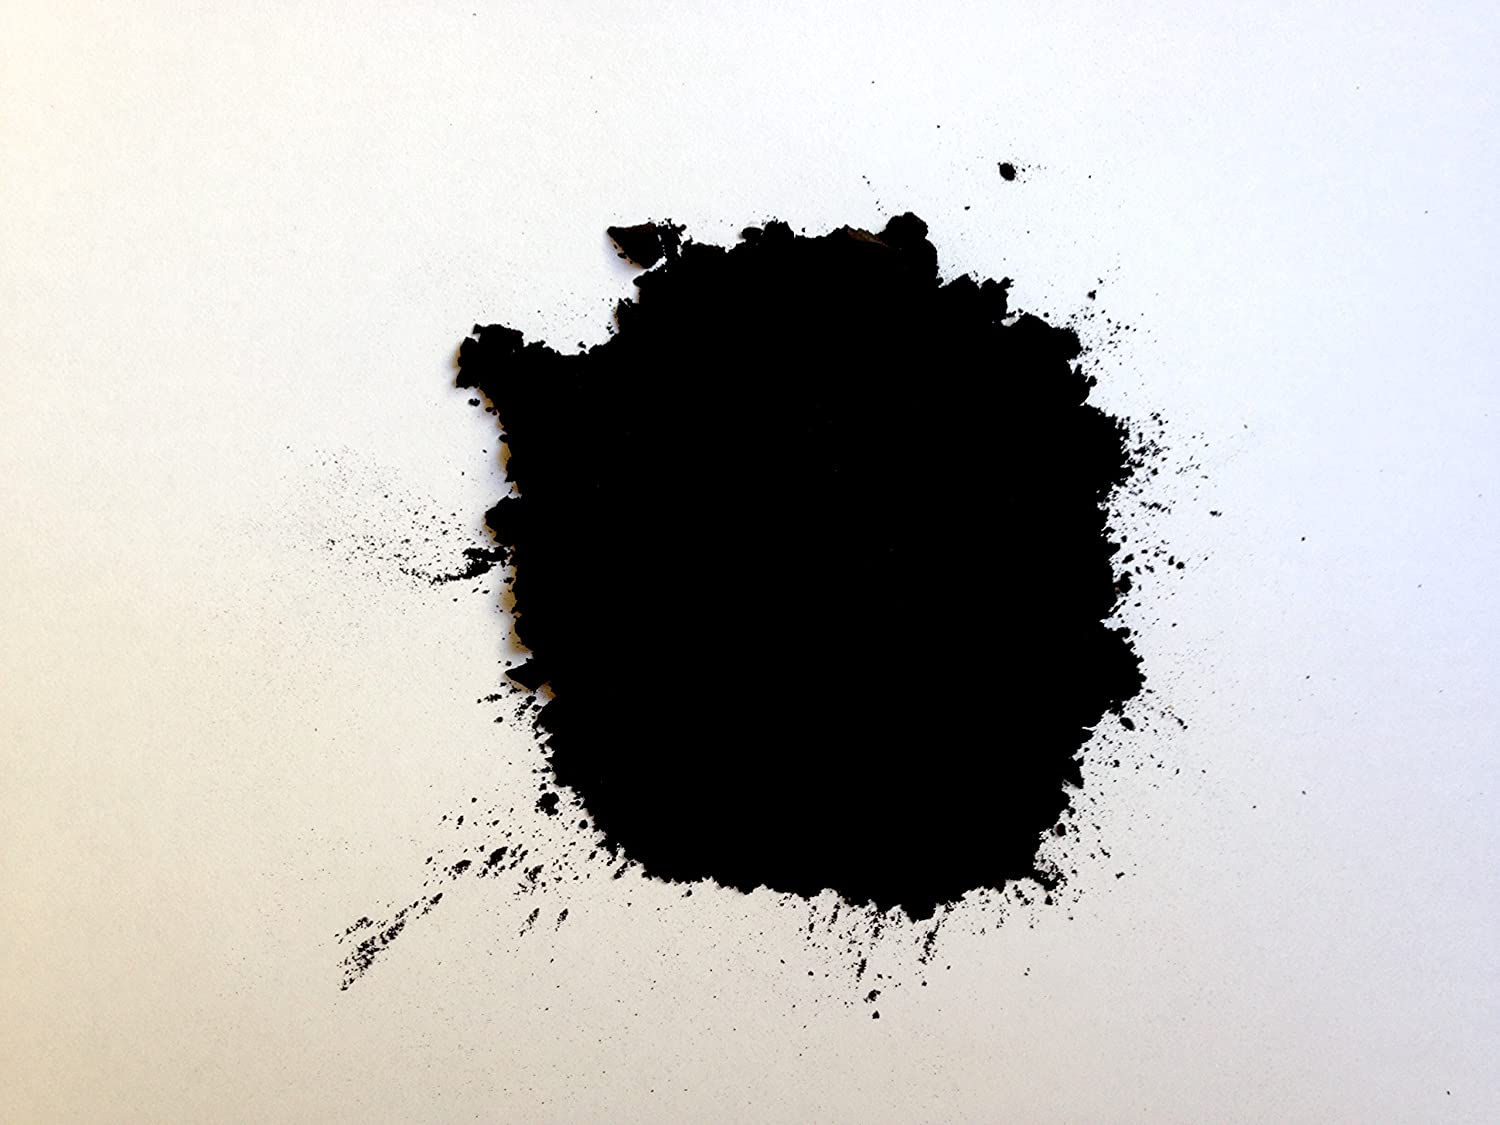 low-cost Strong Black(1 Lb) pigment/dye for concrete,house paint,ceramic,plaster,cement,render,pointing,mortar,bricks,tiles e.t.c